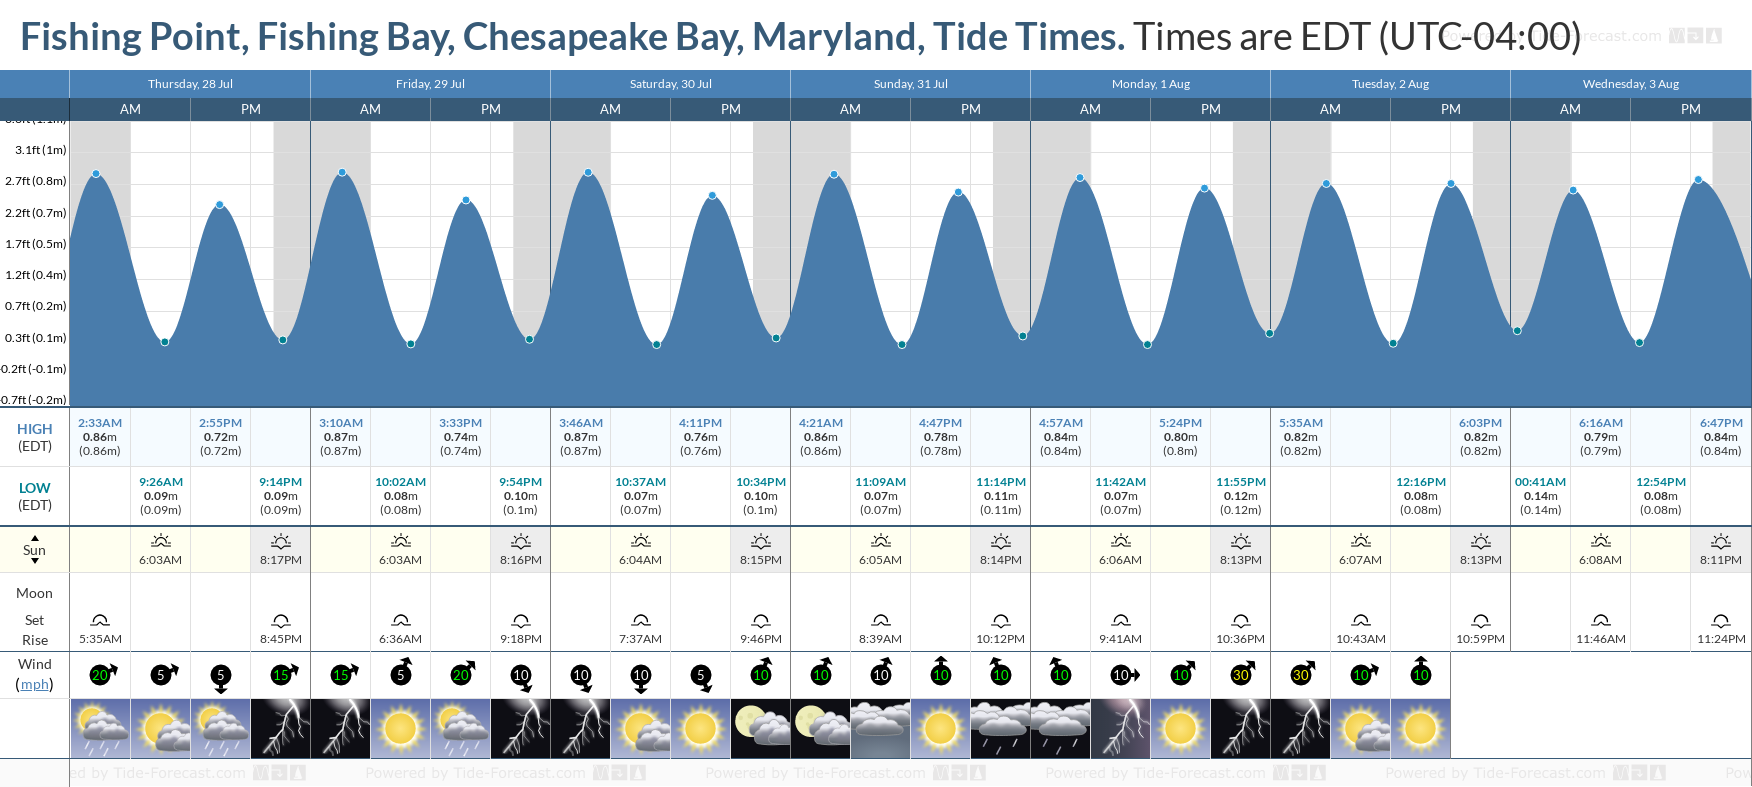 Fishing Point, Fishing Bay, Chesapeake Bay, Maryland Tide Chart including high and low tide tide times for the next 7 days